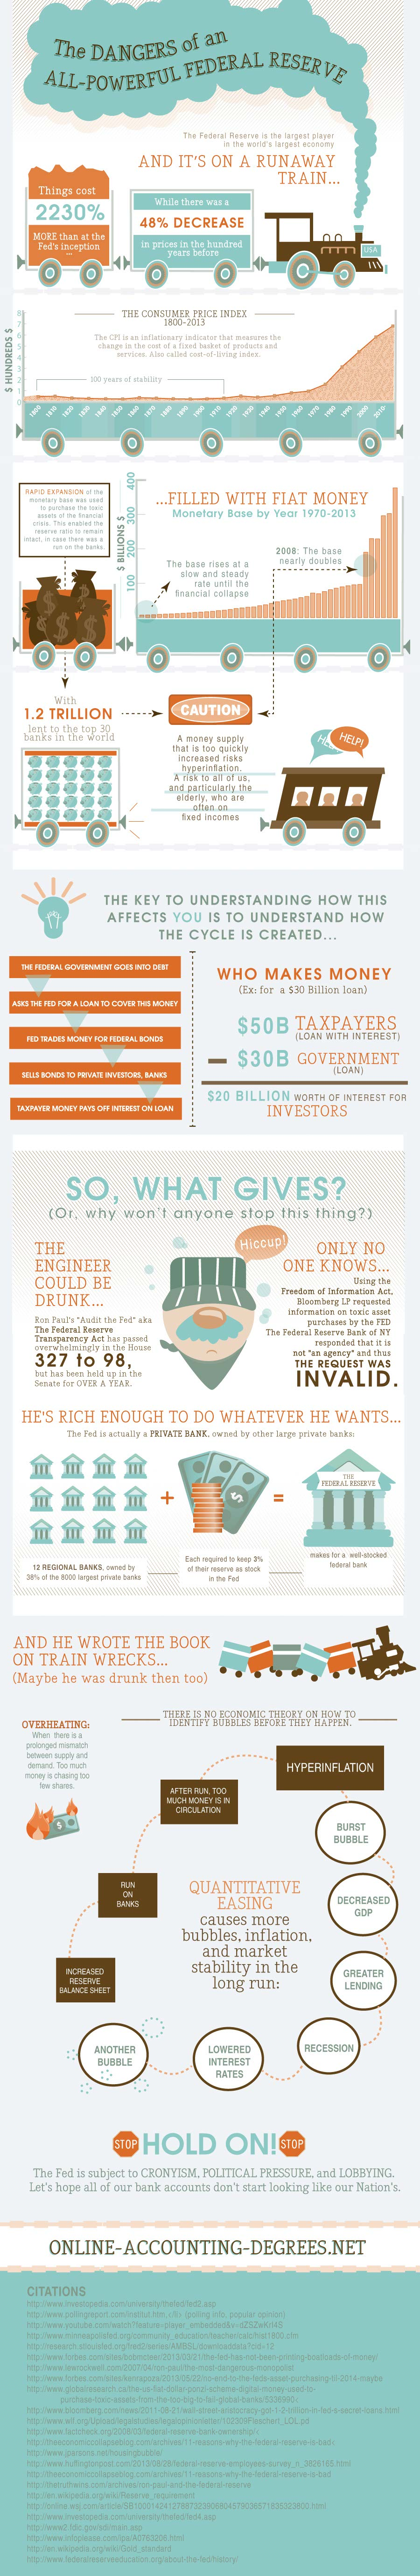 Federal Reserve Impact on Economy-Infographic